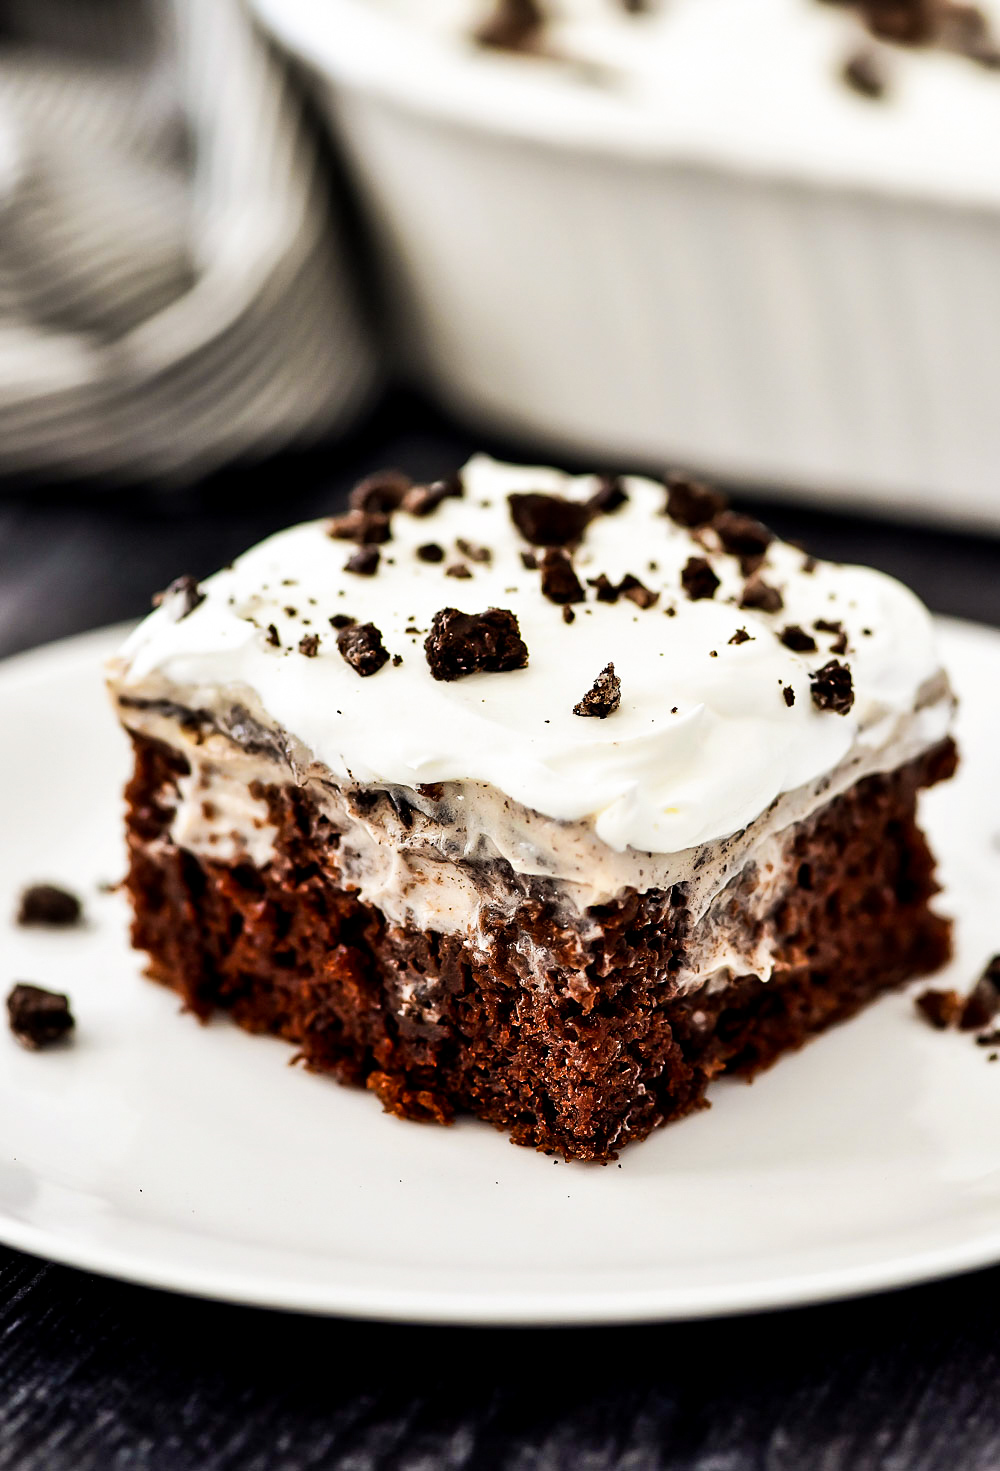 Oreo Pudding Poke Cake starts with a chocolate cake, then holes are poked in the cake and Oreo Pudding is poured inside the holes. The cake is topped off with cool whip and crushed Oreo cookies.